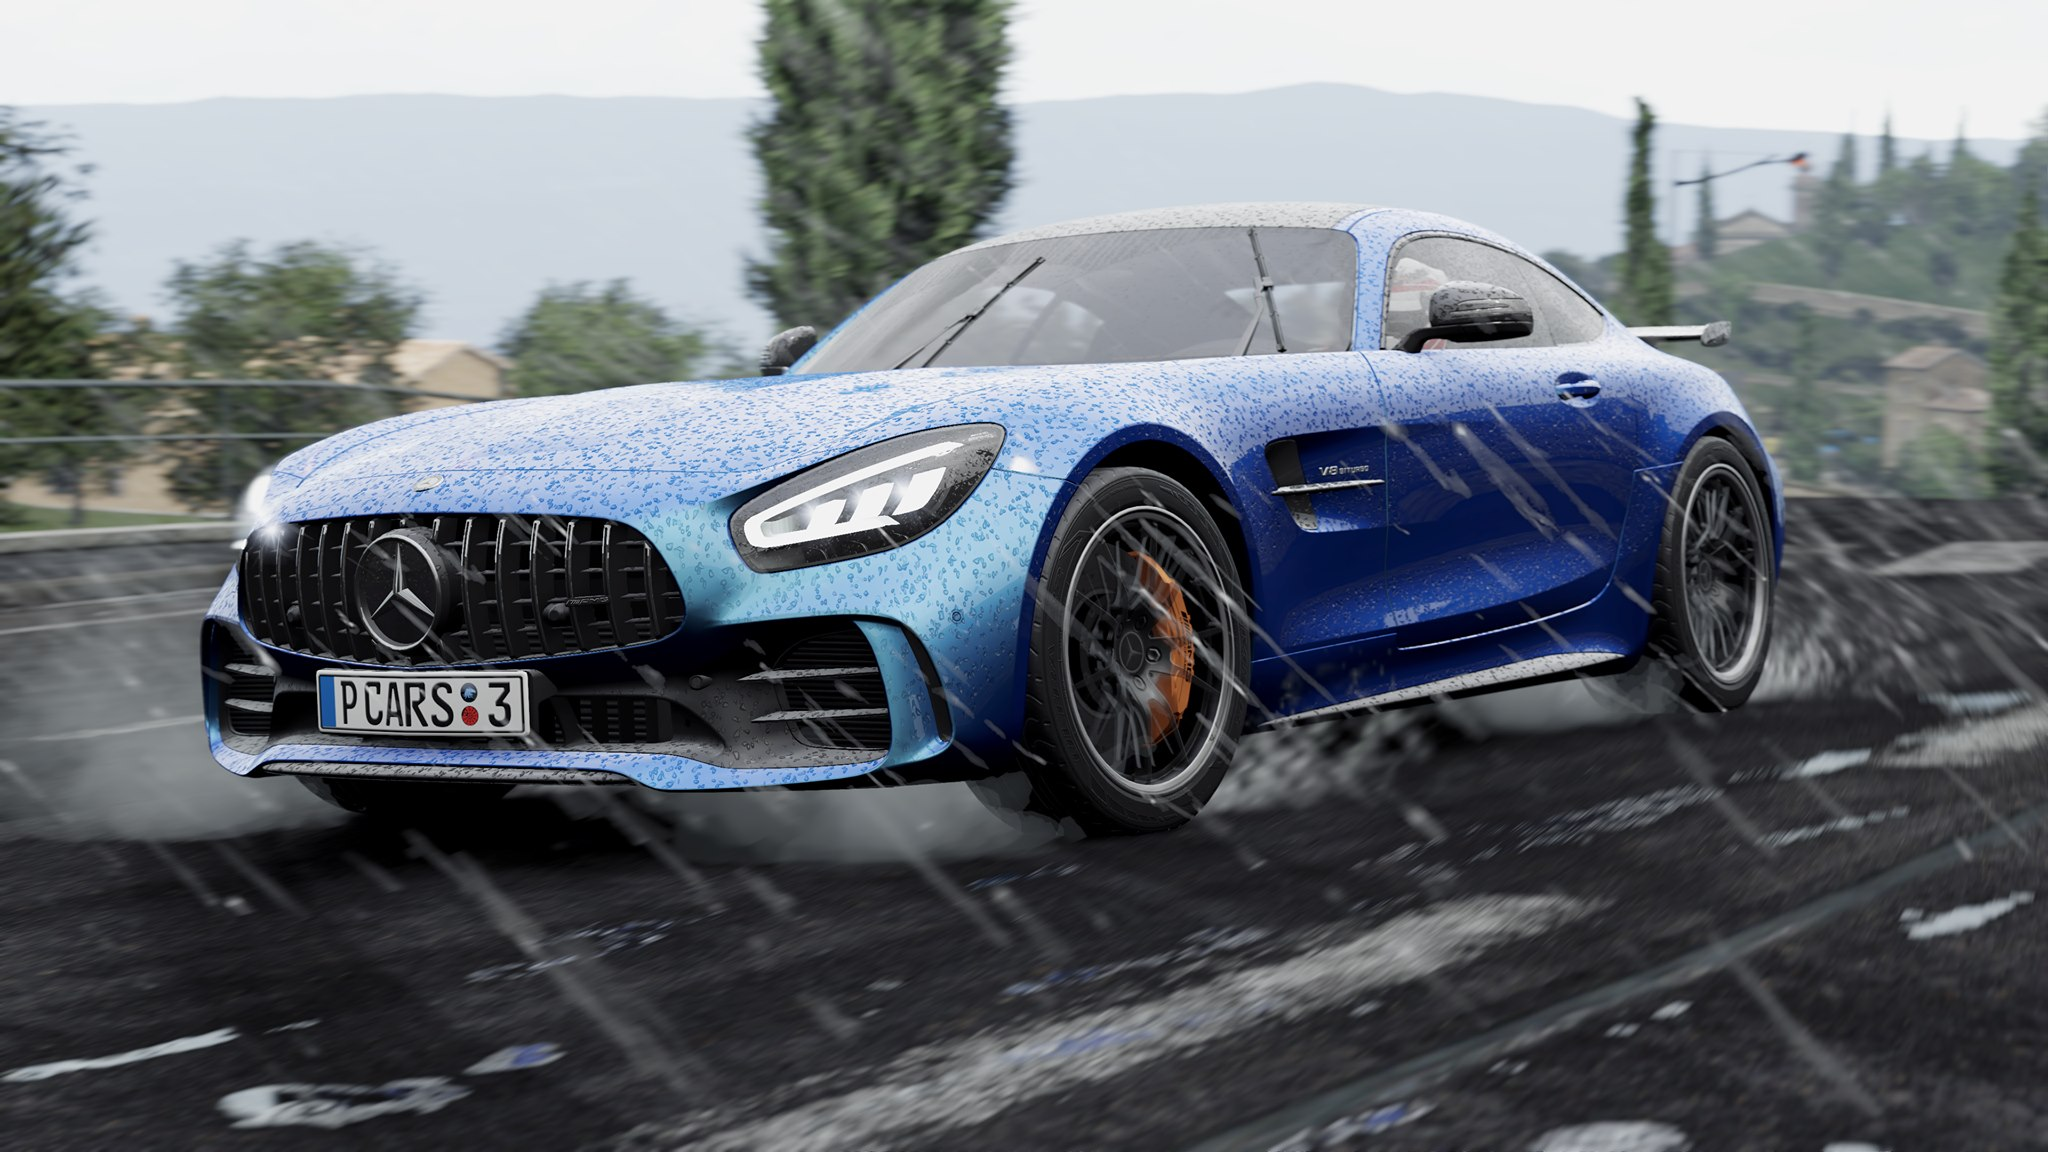 Project Cars 3 Hits the Track This Summer | Best Buy Blog